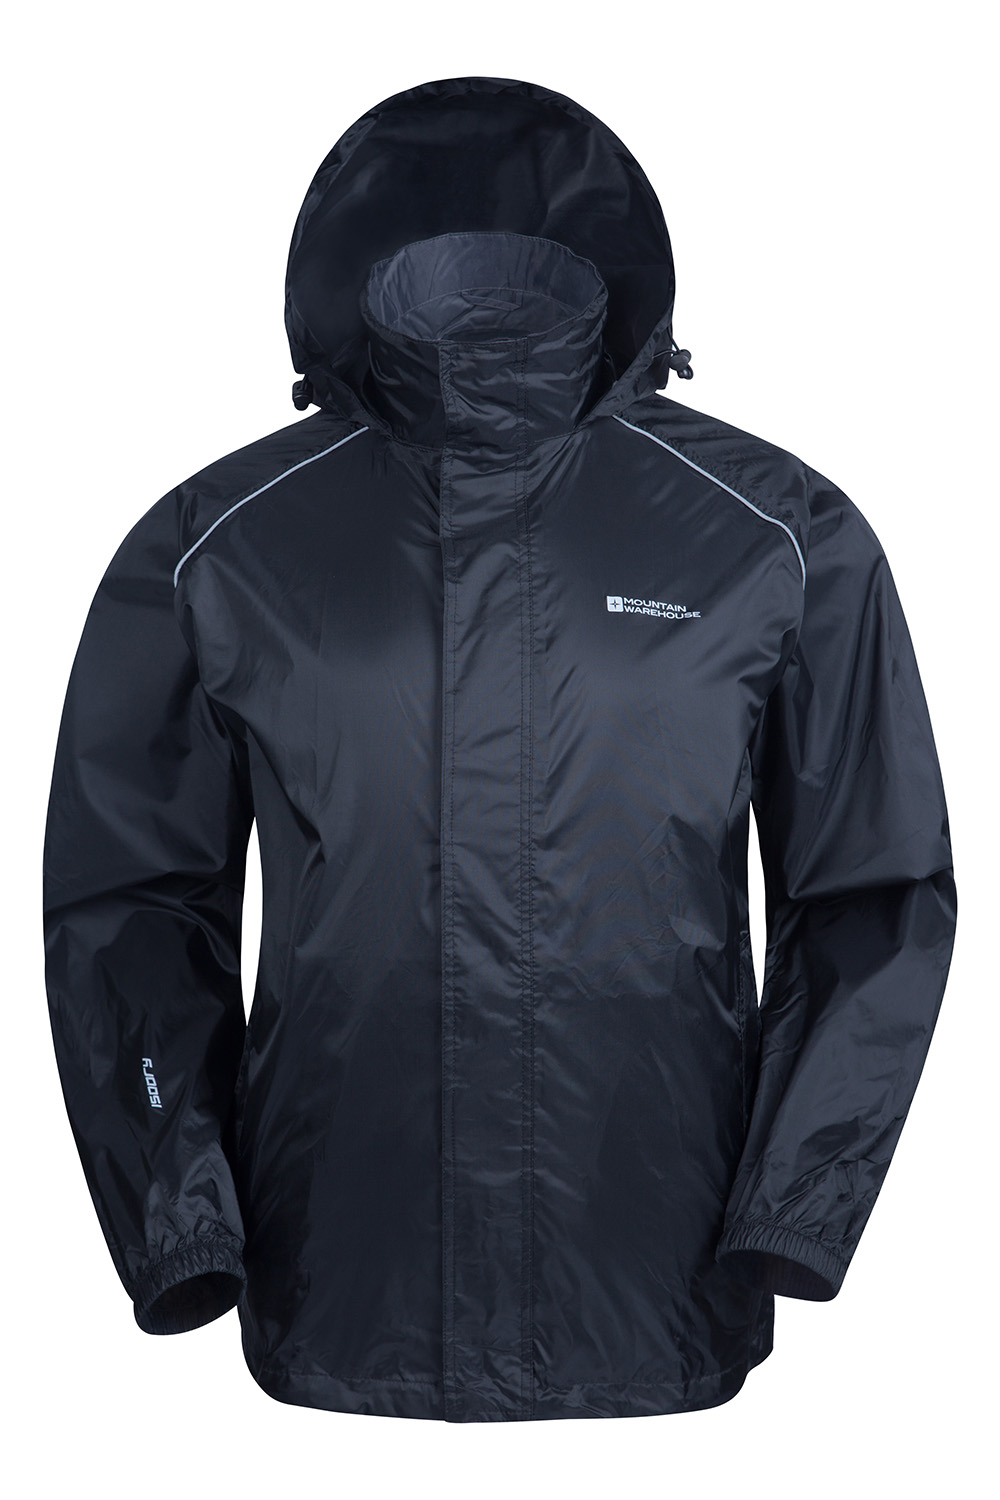 Waterproof Jackets: Must for Wet Weather